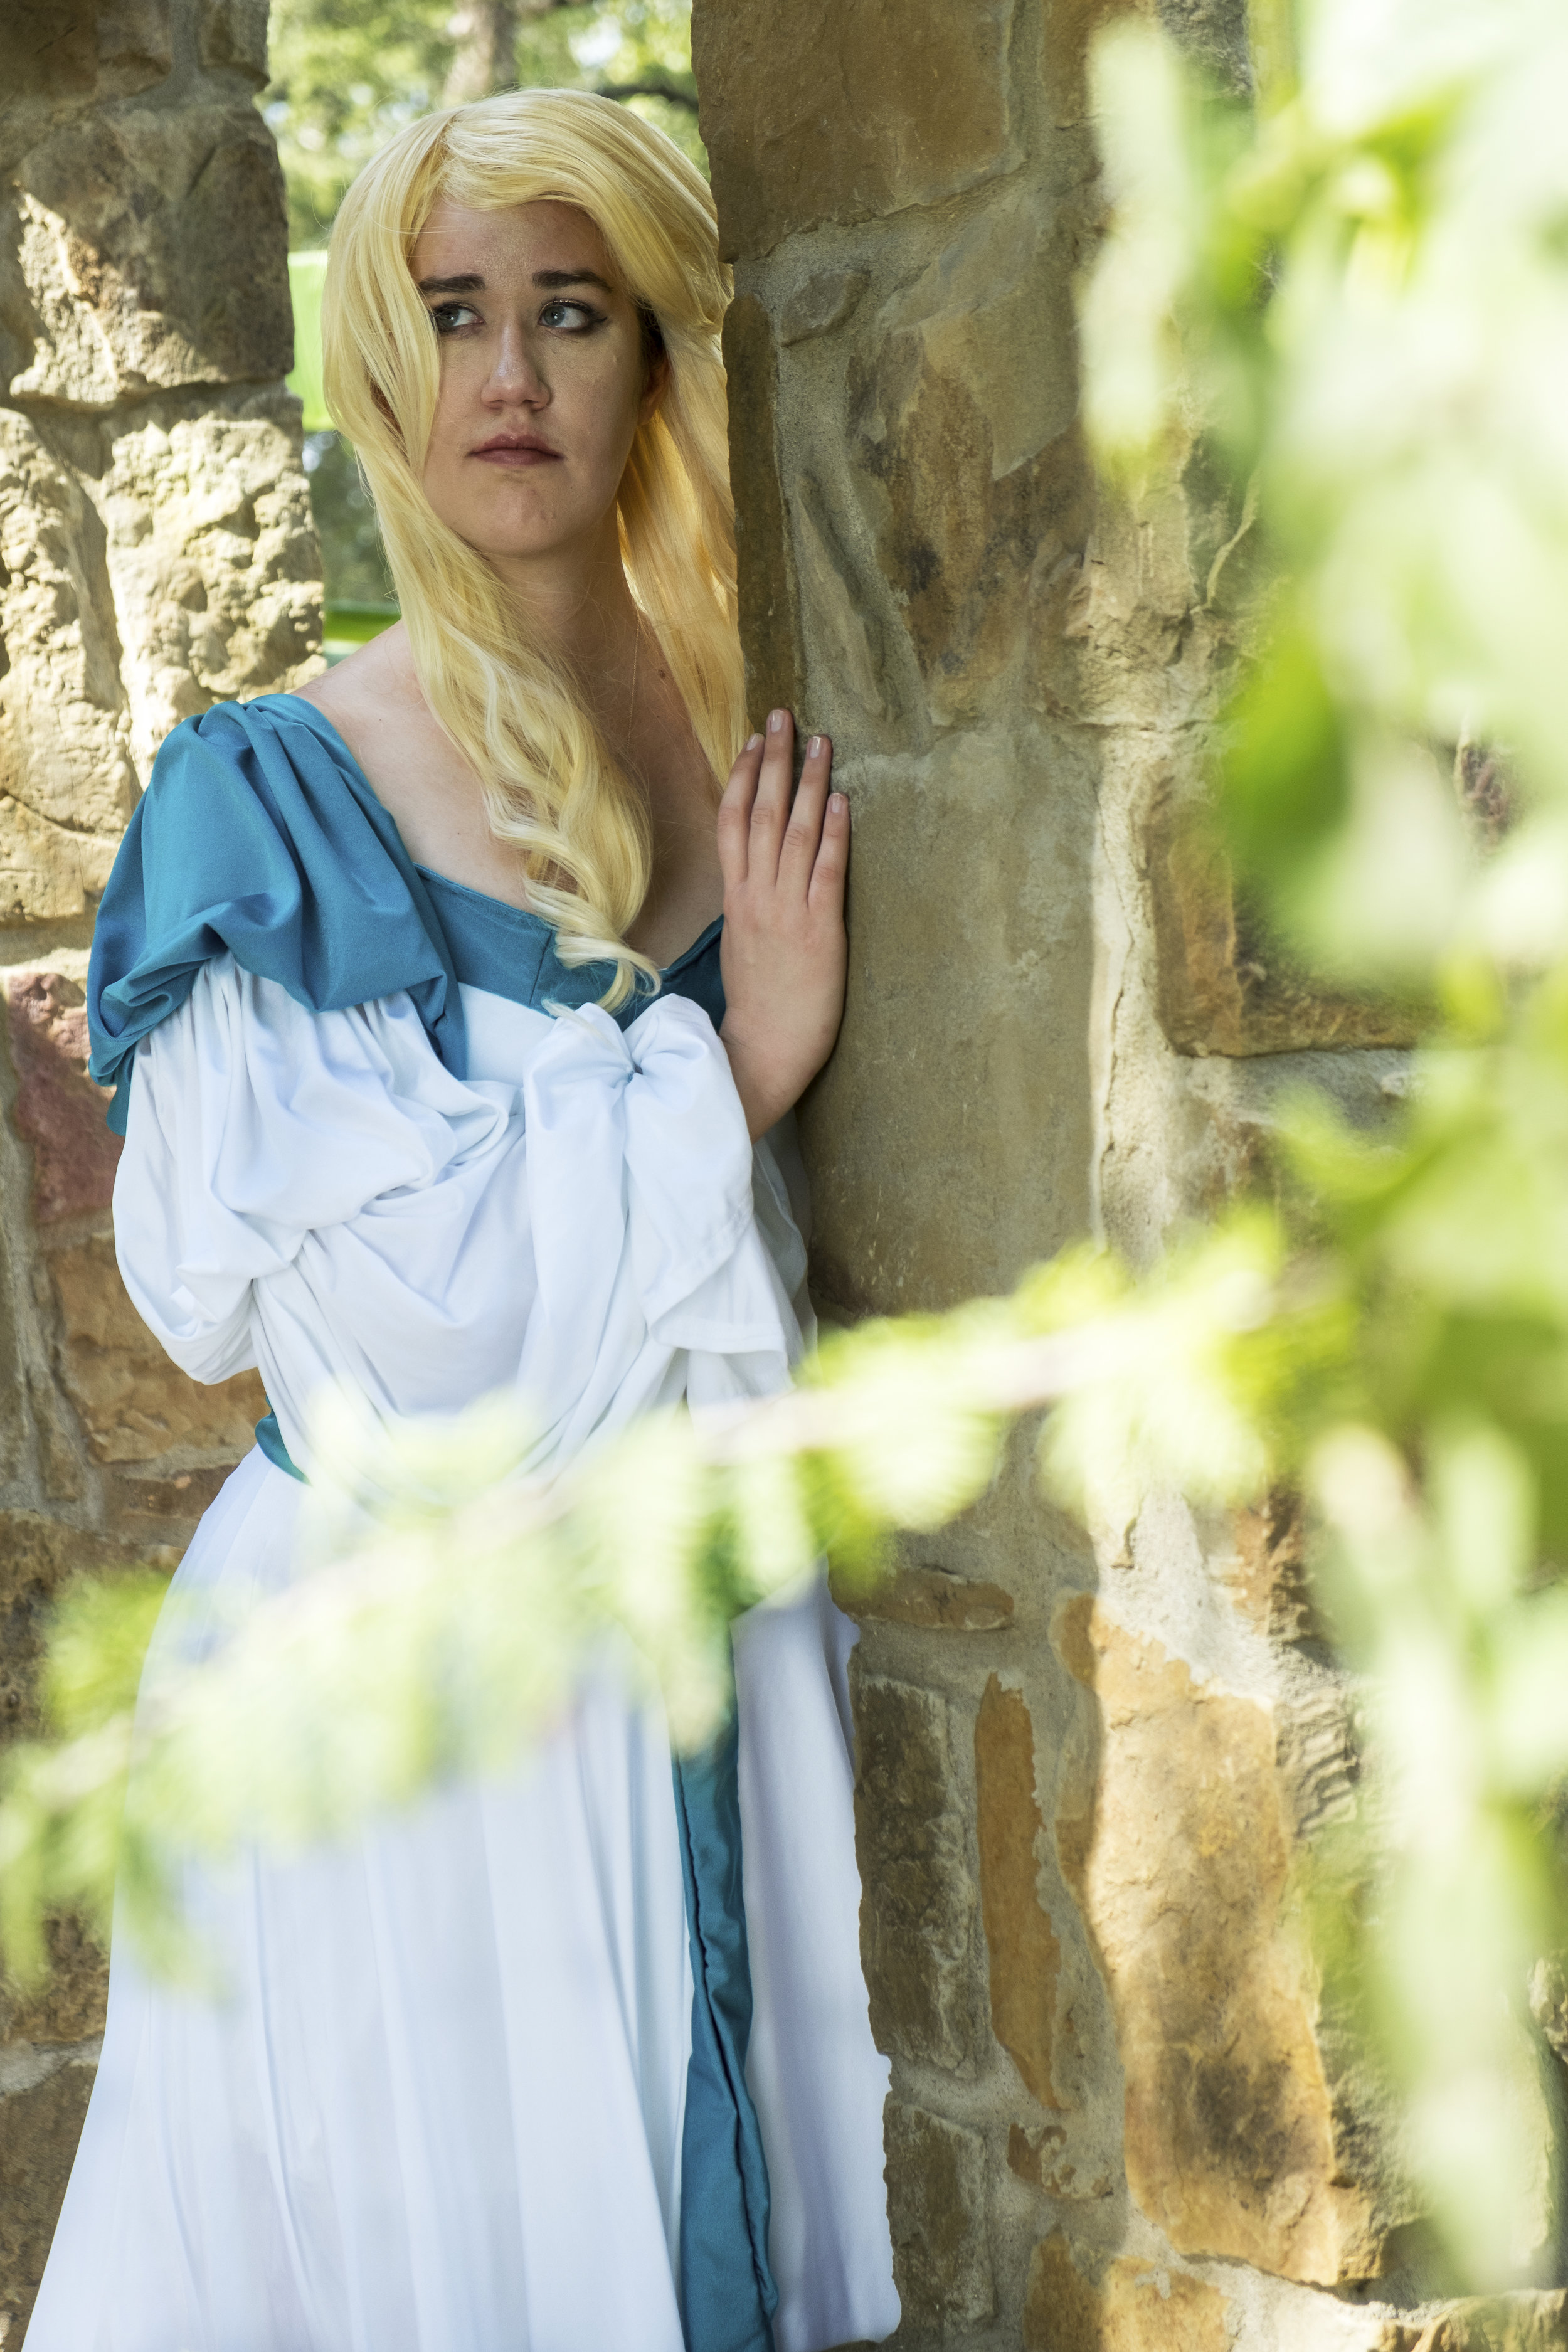 Rebecca of Twin Thrones Cosplay in Odette cosplay at Krause Springs